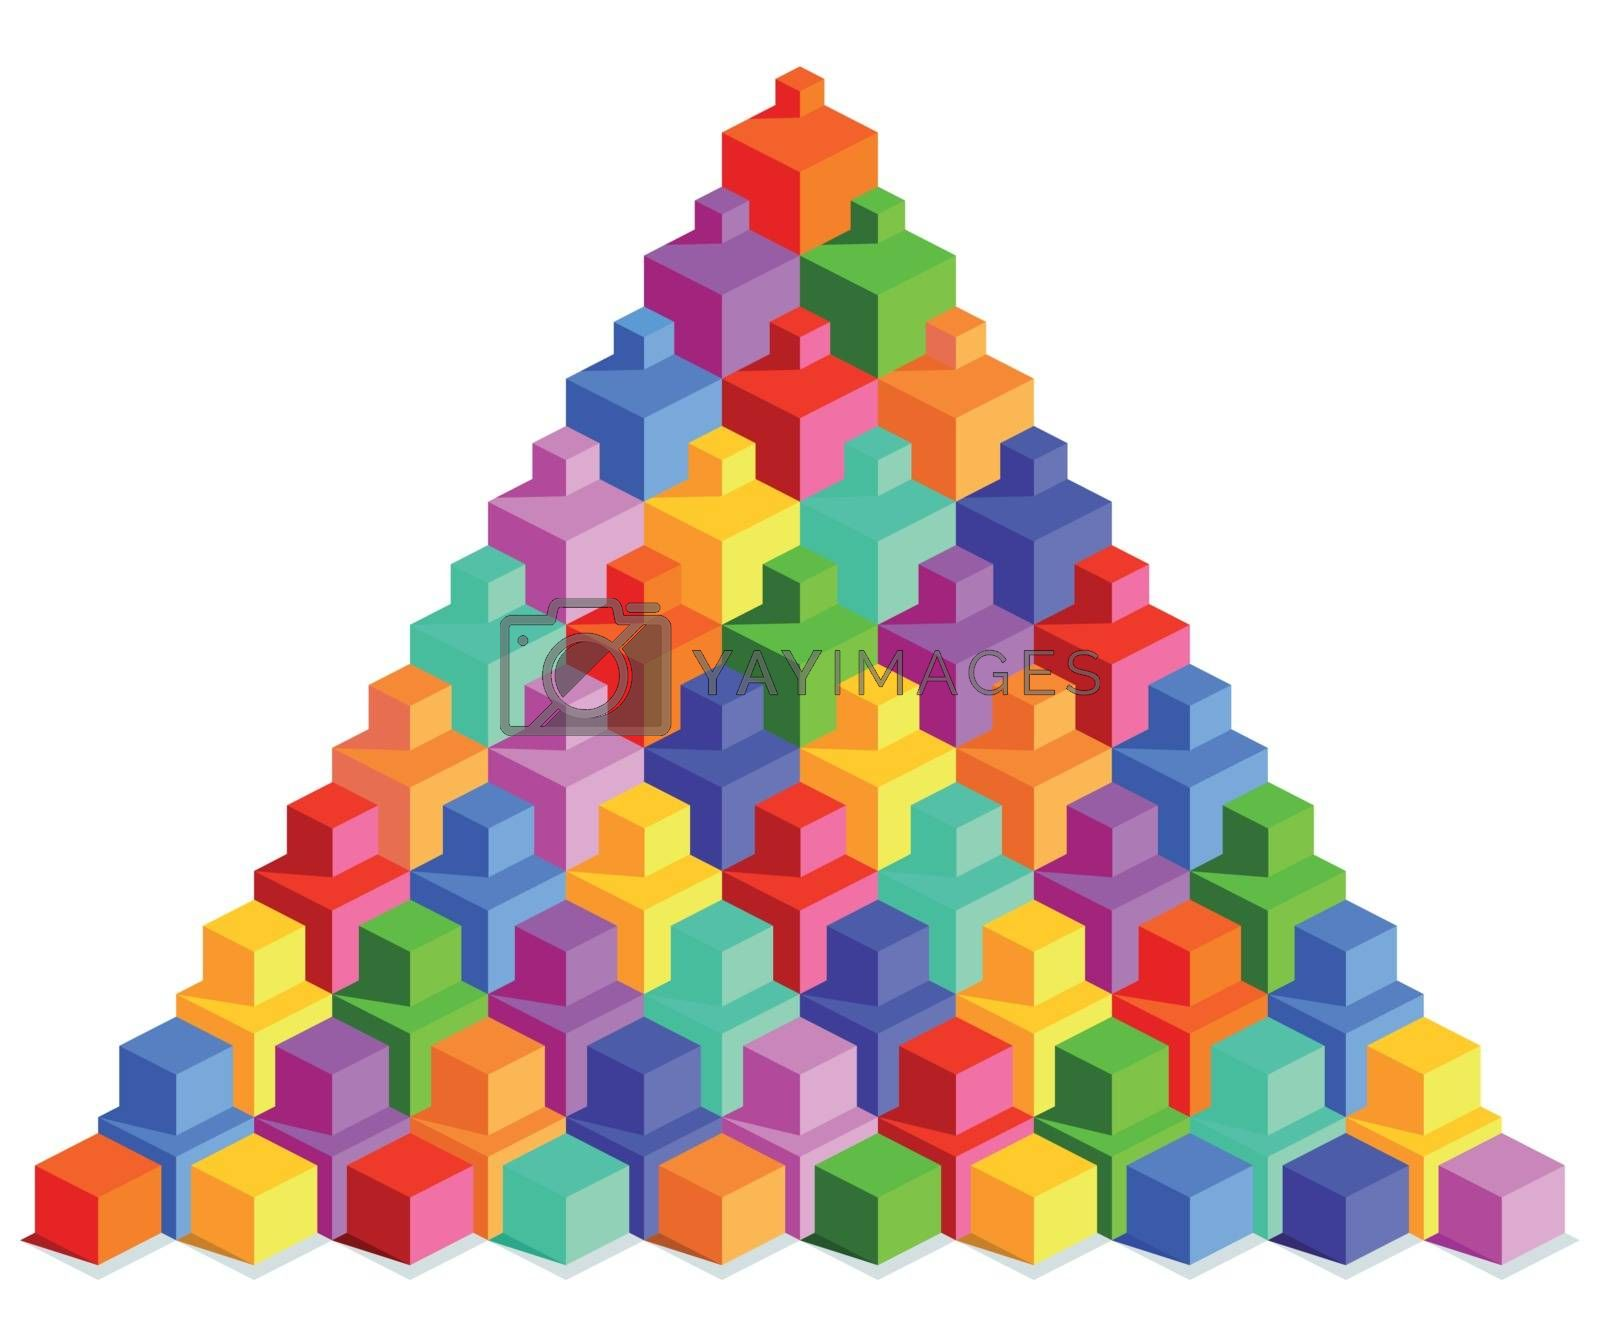 Pyramid of colorful cubes, illustration